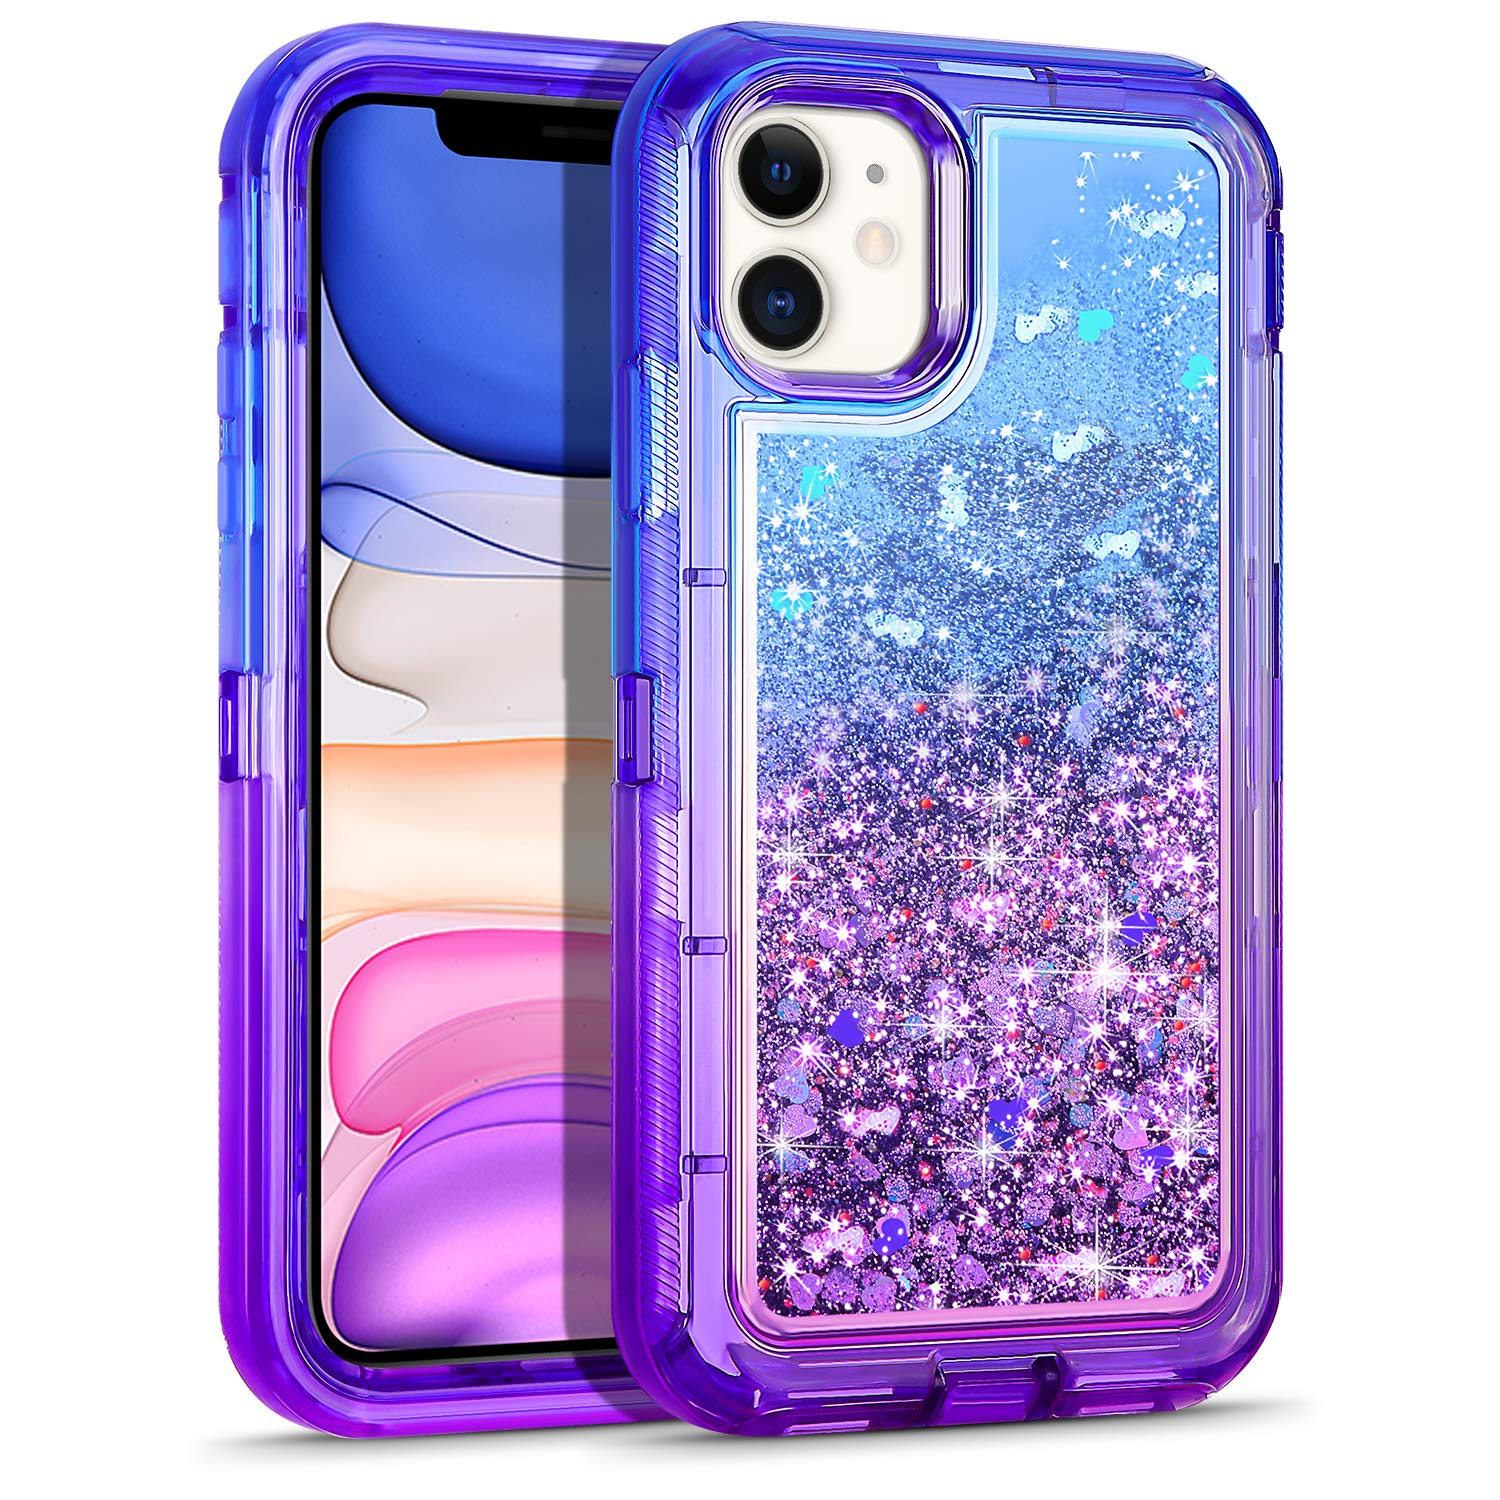 WESADN Case for iPhone 11 Case for Women Girls Glitter Cute Protective Shockproof Heavy Duty Clear Case with Sparkle Bling Quicksand Hard Bumper Soft TPU Cover for iPhone 11,6.1 Inches,Blue Purple